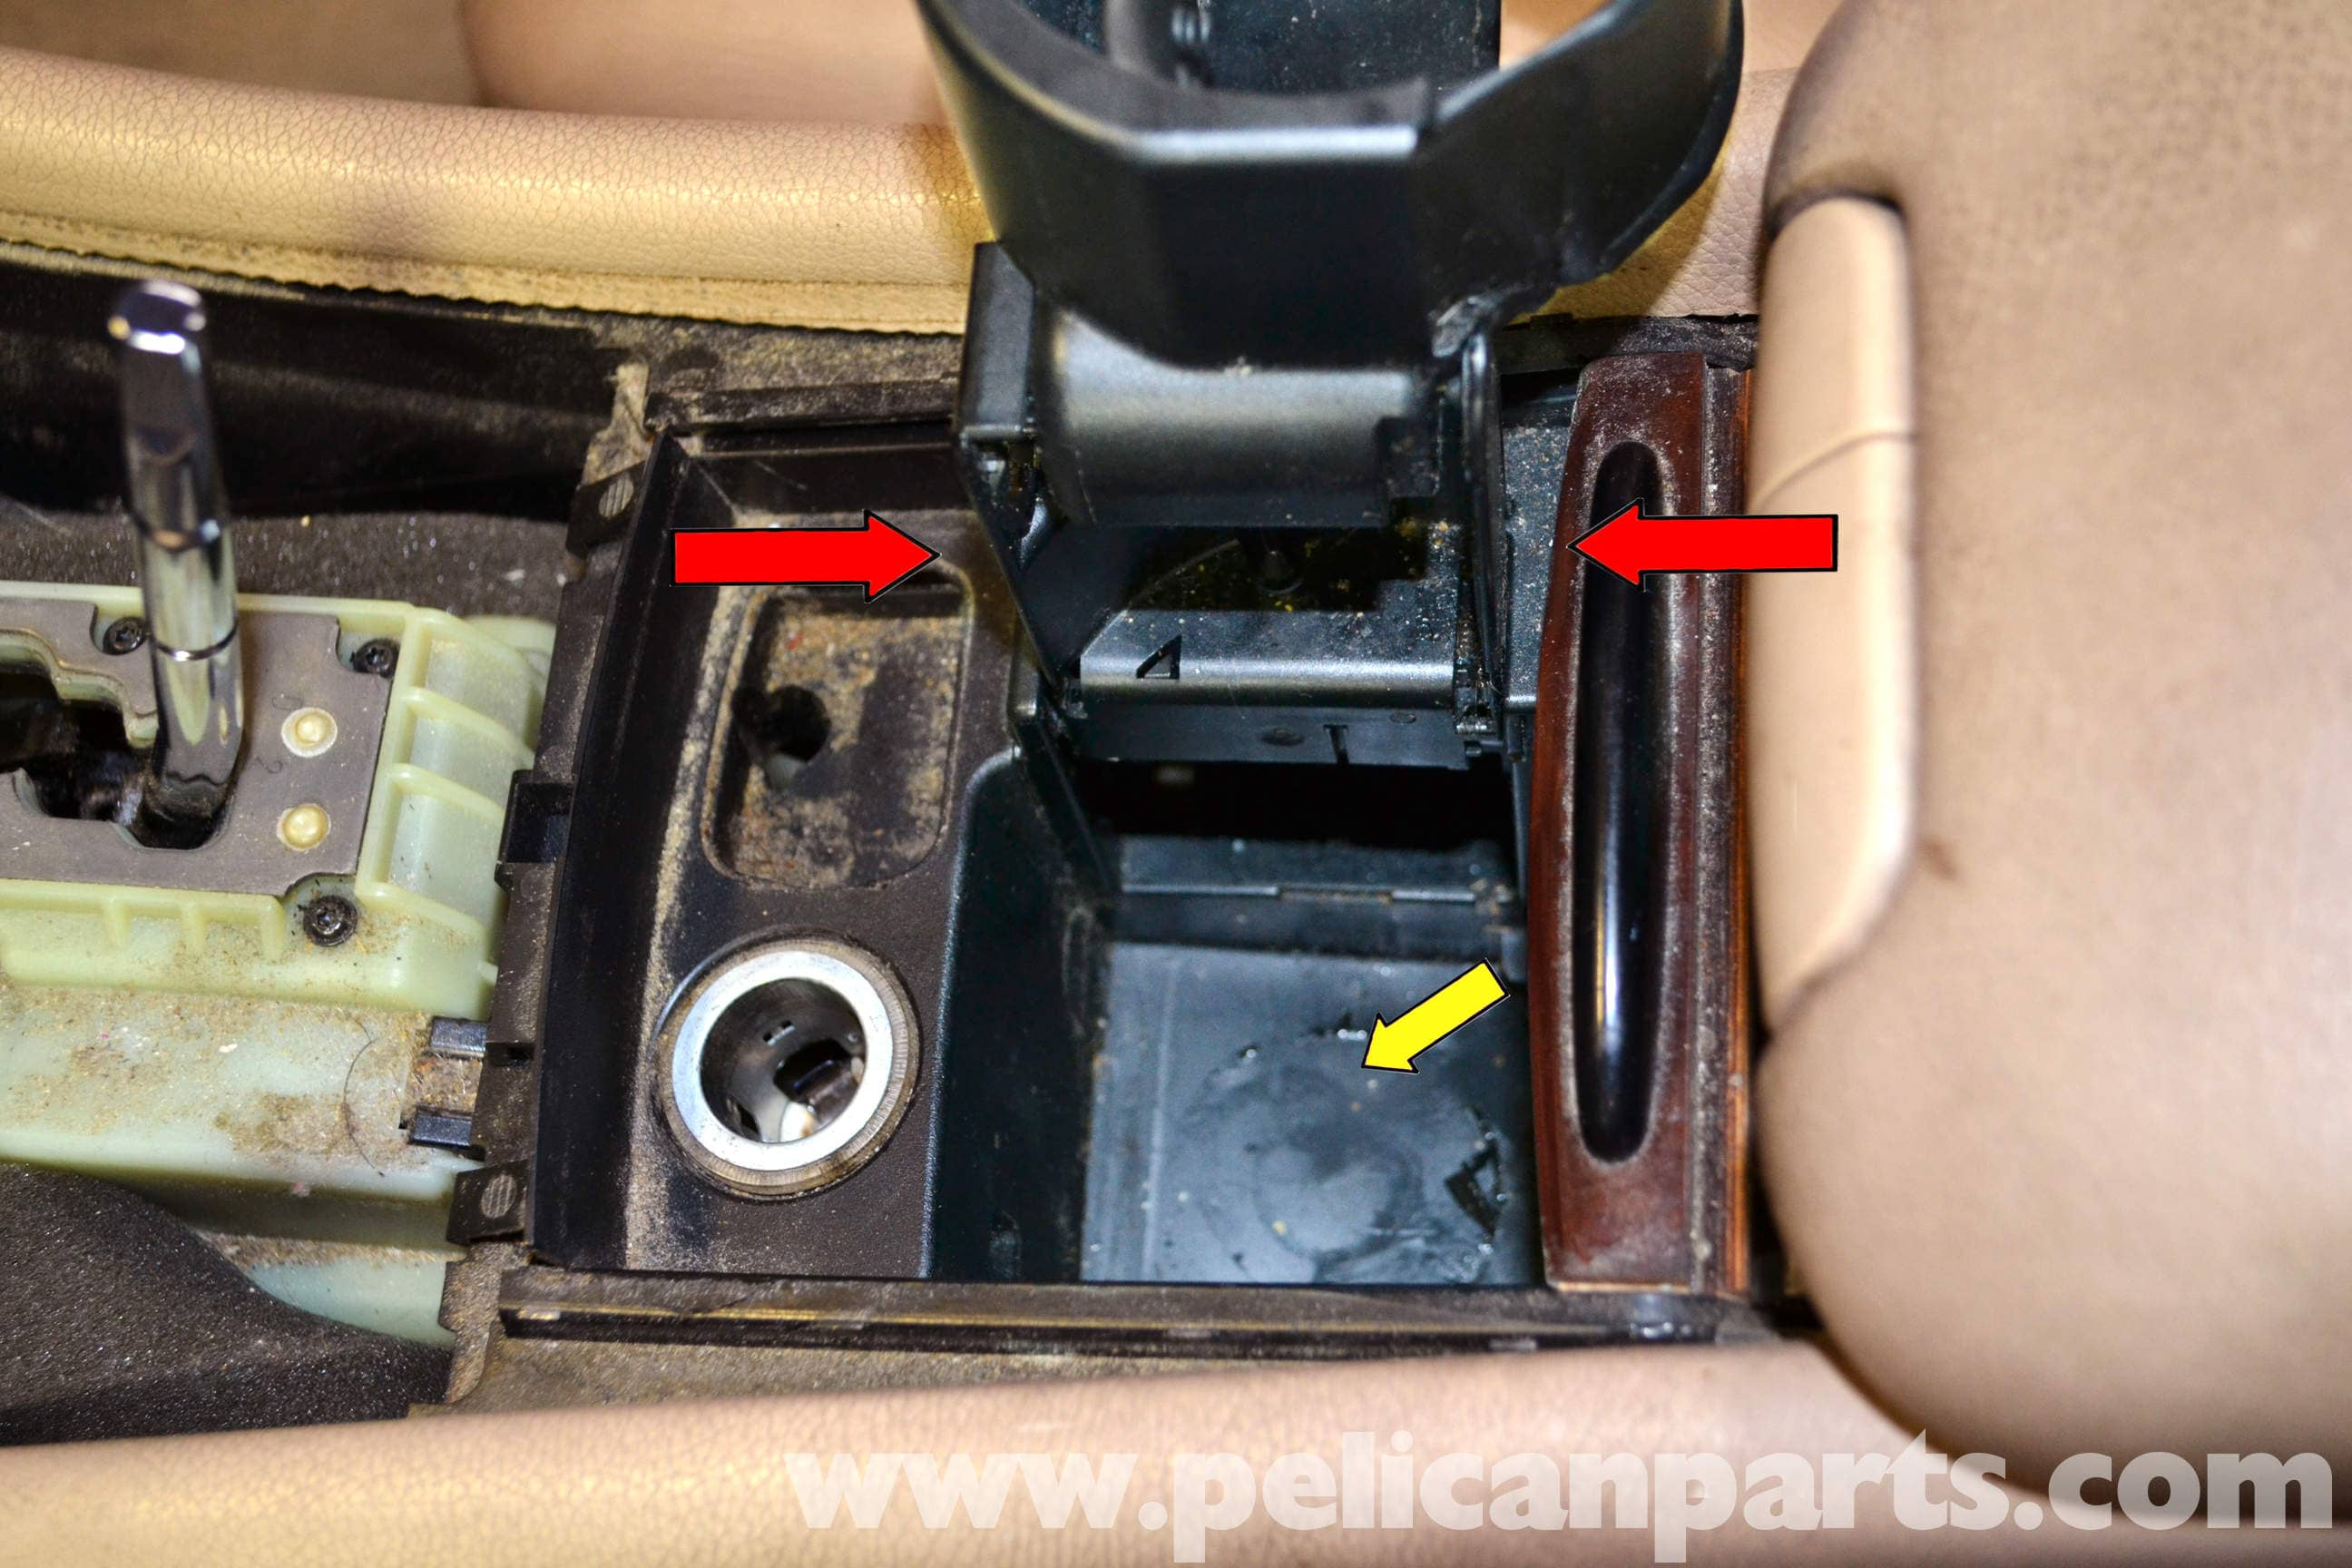 4 Way Slide Switch Wiring Diagram Mercedes Benz W203 Cup Holder Cover Removal 2001 2007